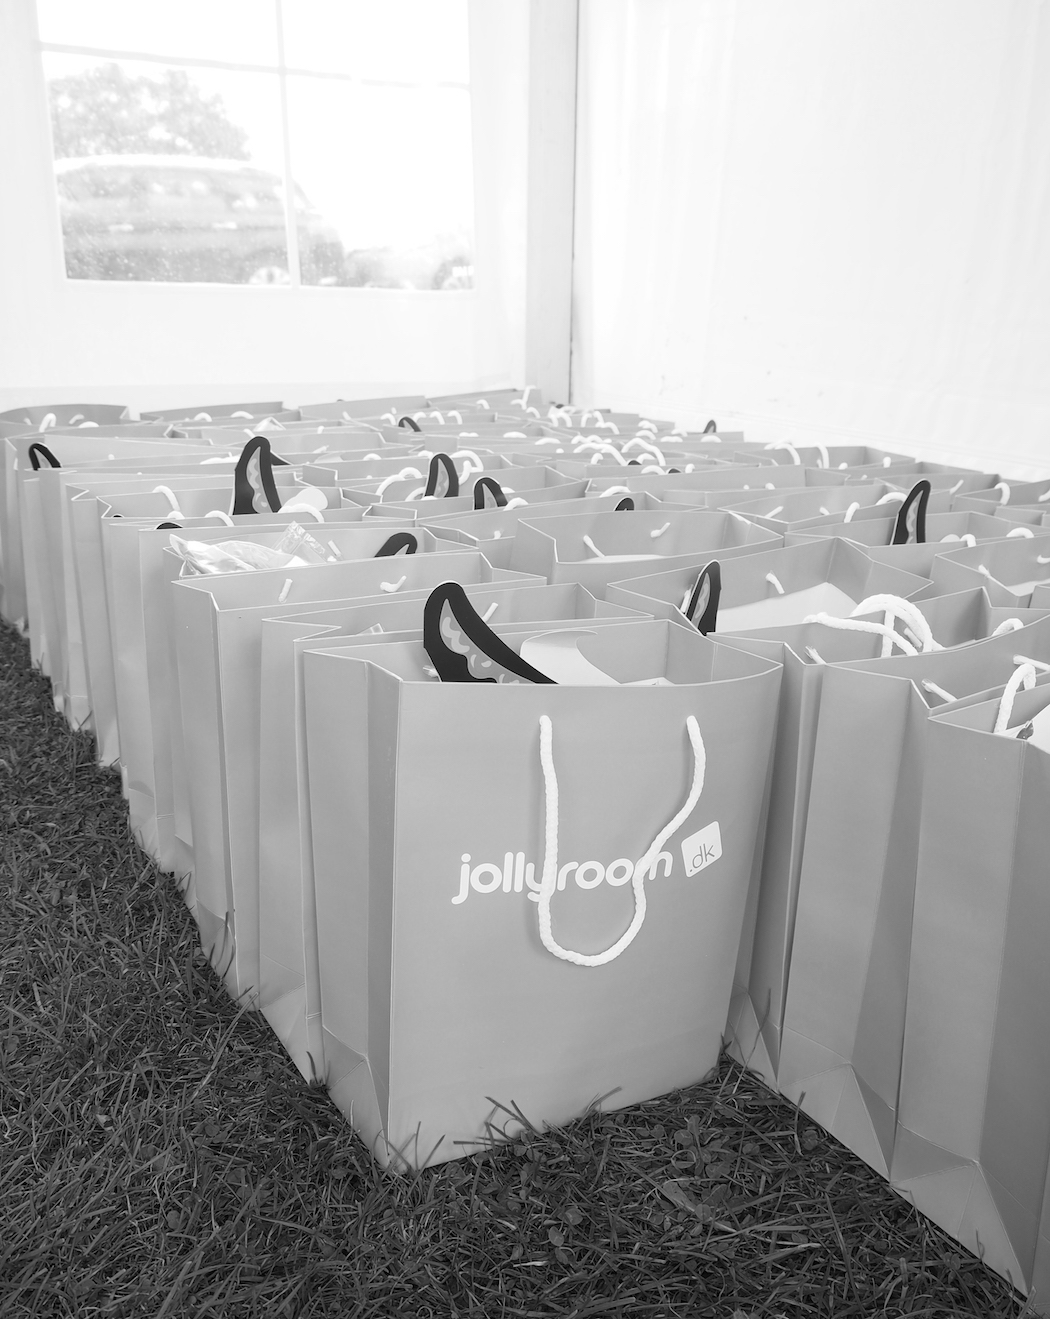 jollyroom_goodiebags